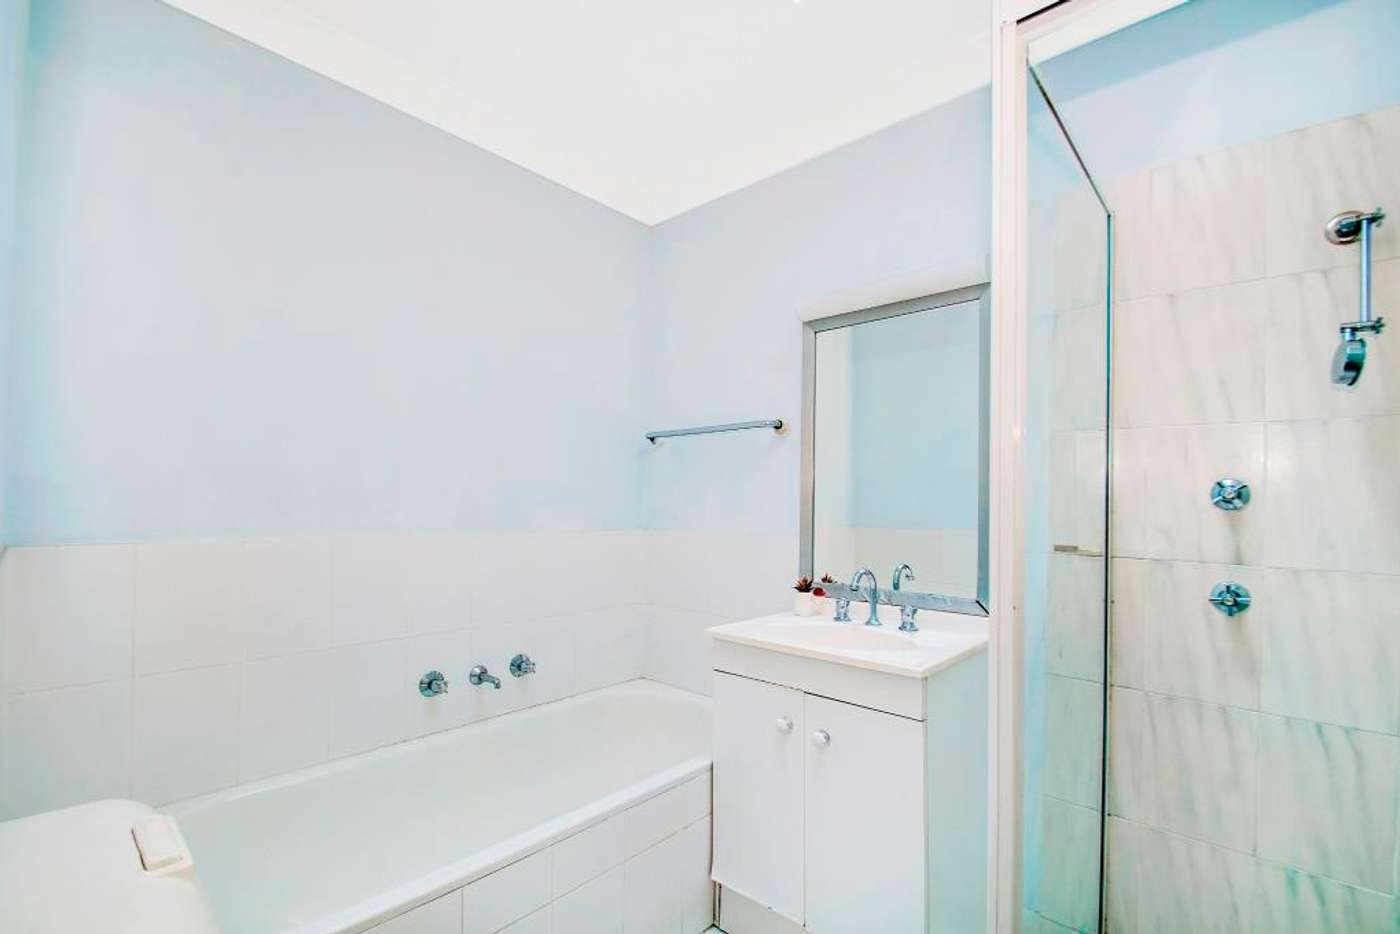 Sixth view of Homely townhouse listing, 4/3 Reid Ave, Westmead NSW 2145